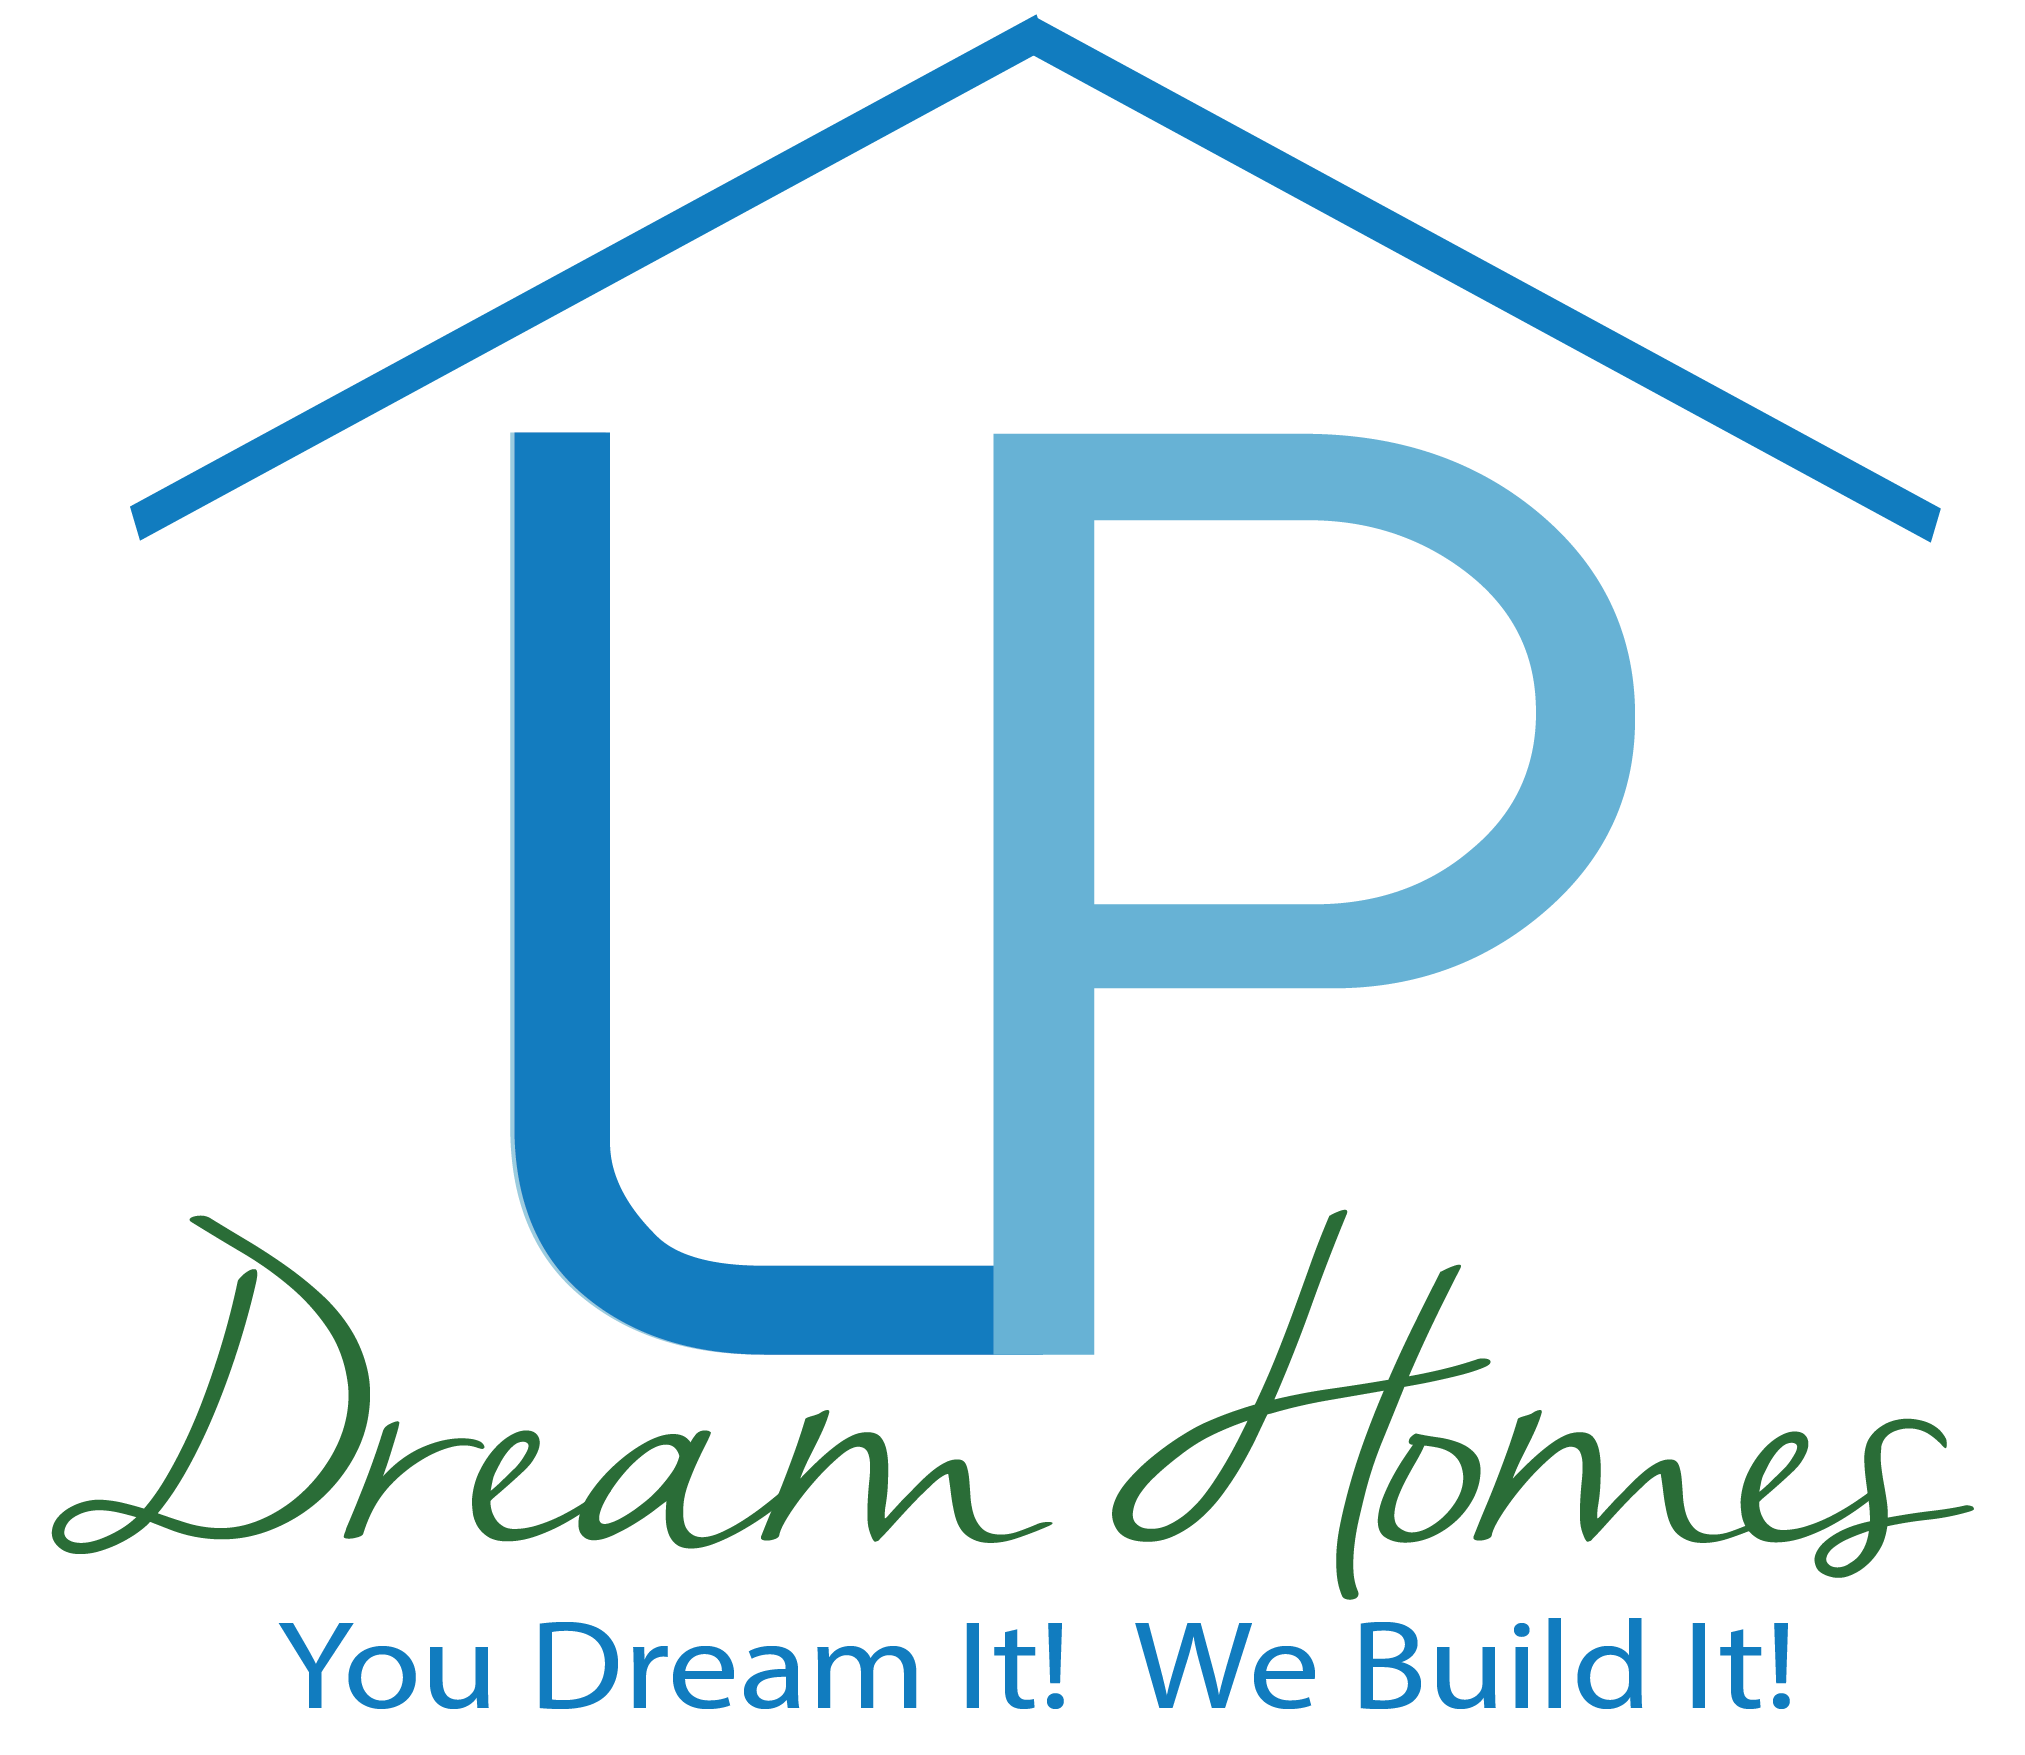 LP Dream Homes, LLC